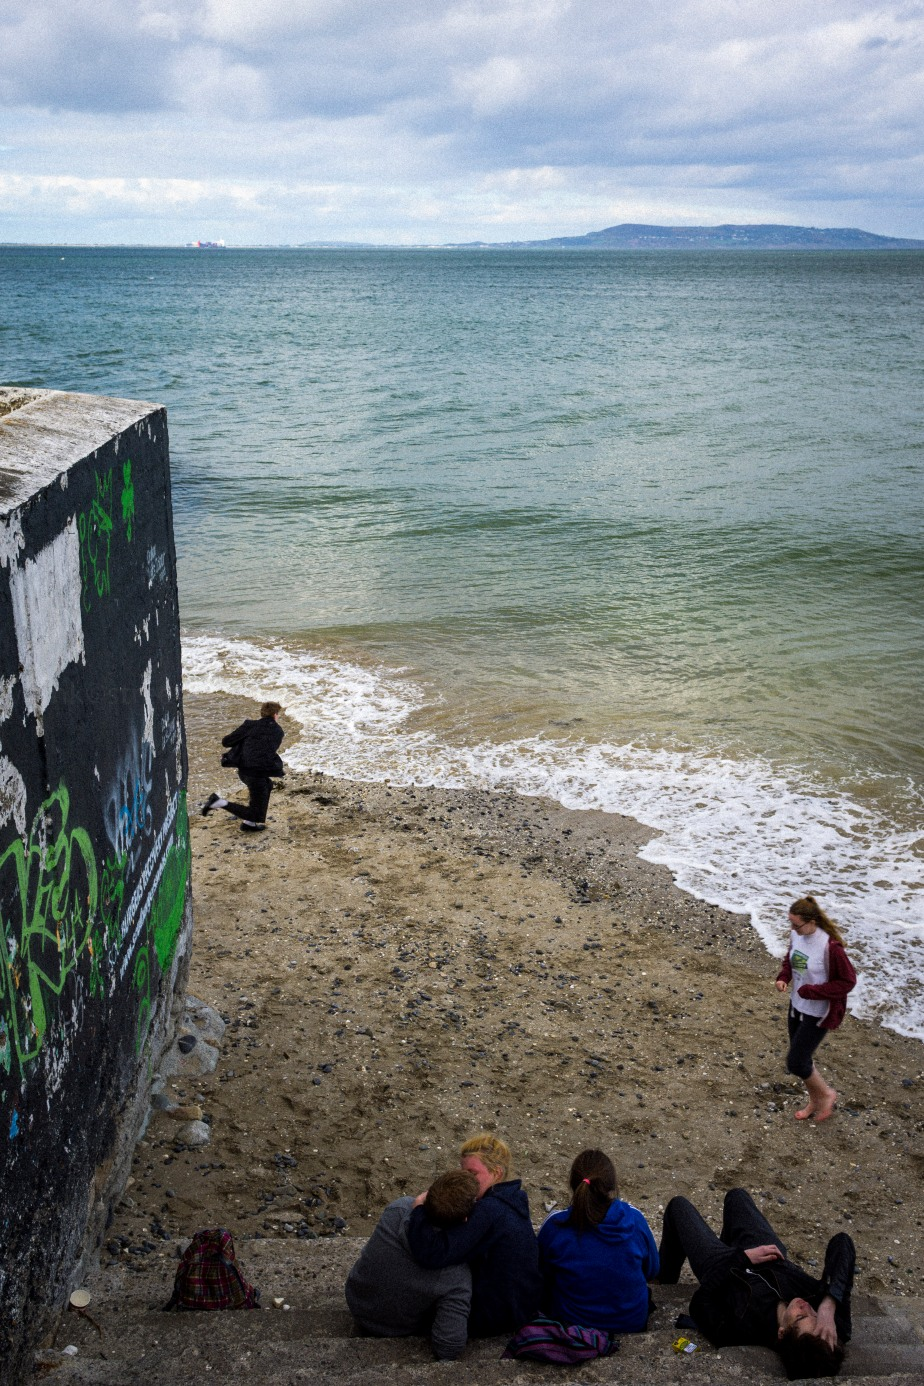 After School fun at blackrock baths. Dublin Ireland.